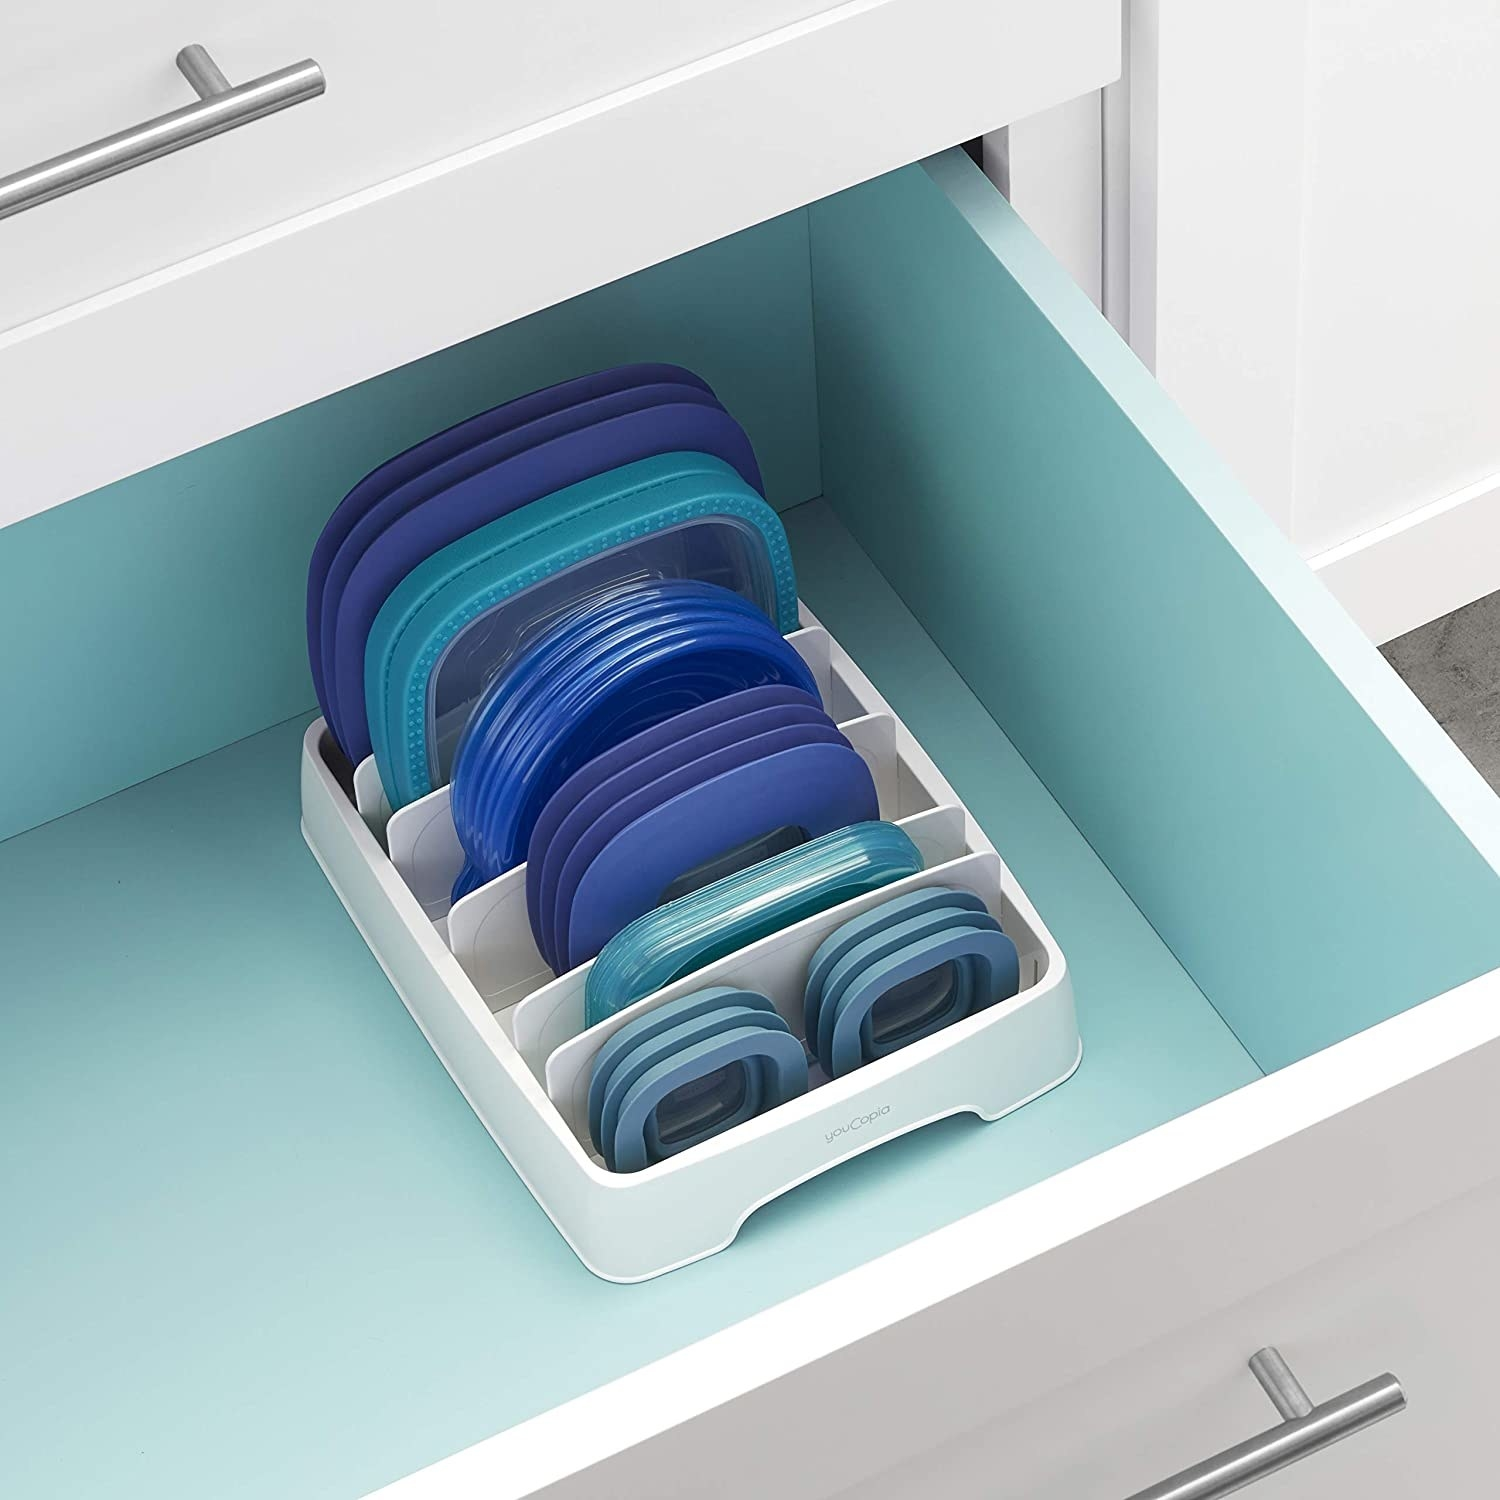 A variety of lids securely stored in the lid organizer.